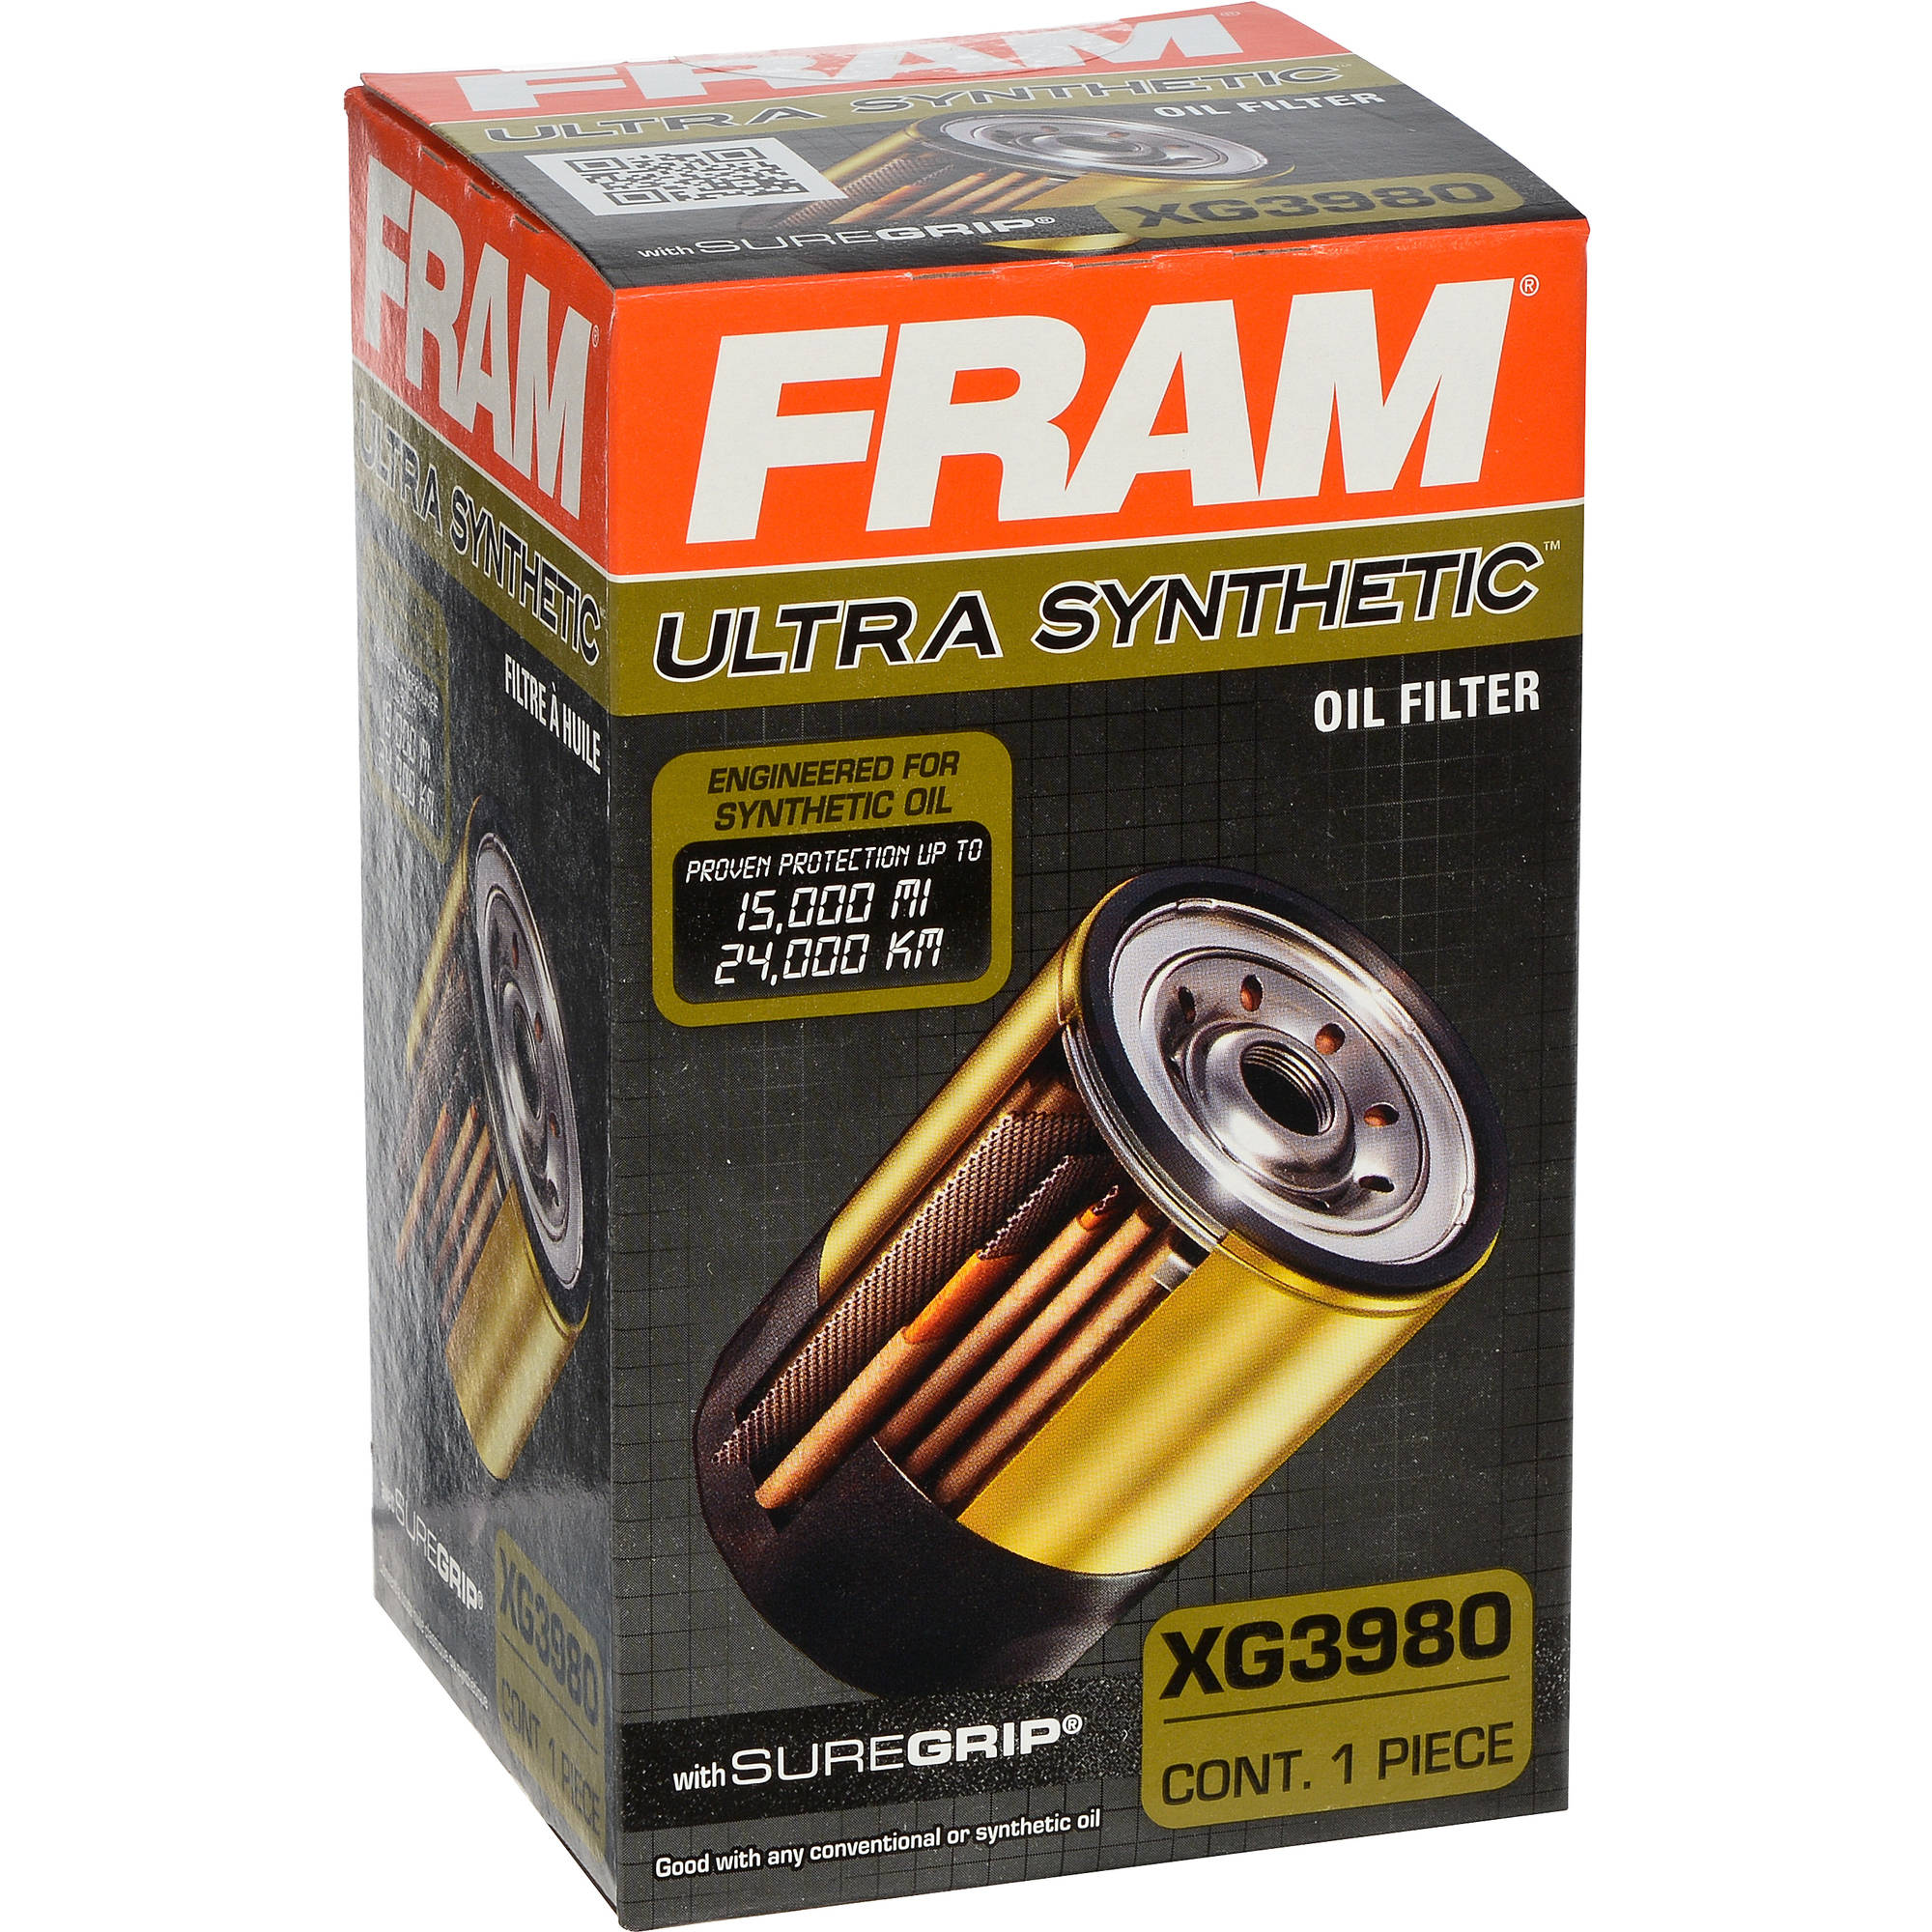 FRAM Ultra Synthetic Oil Filter, XG3980